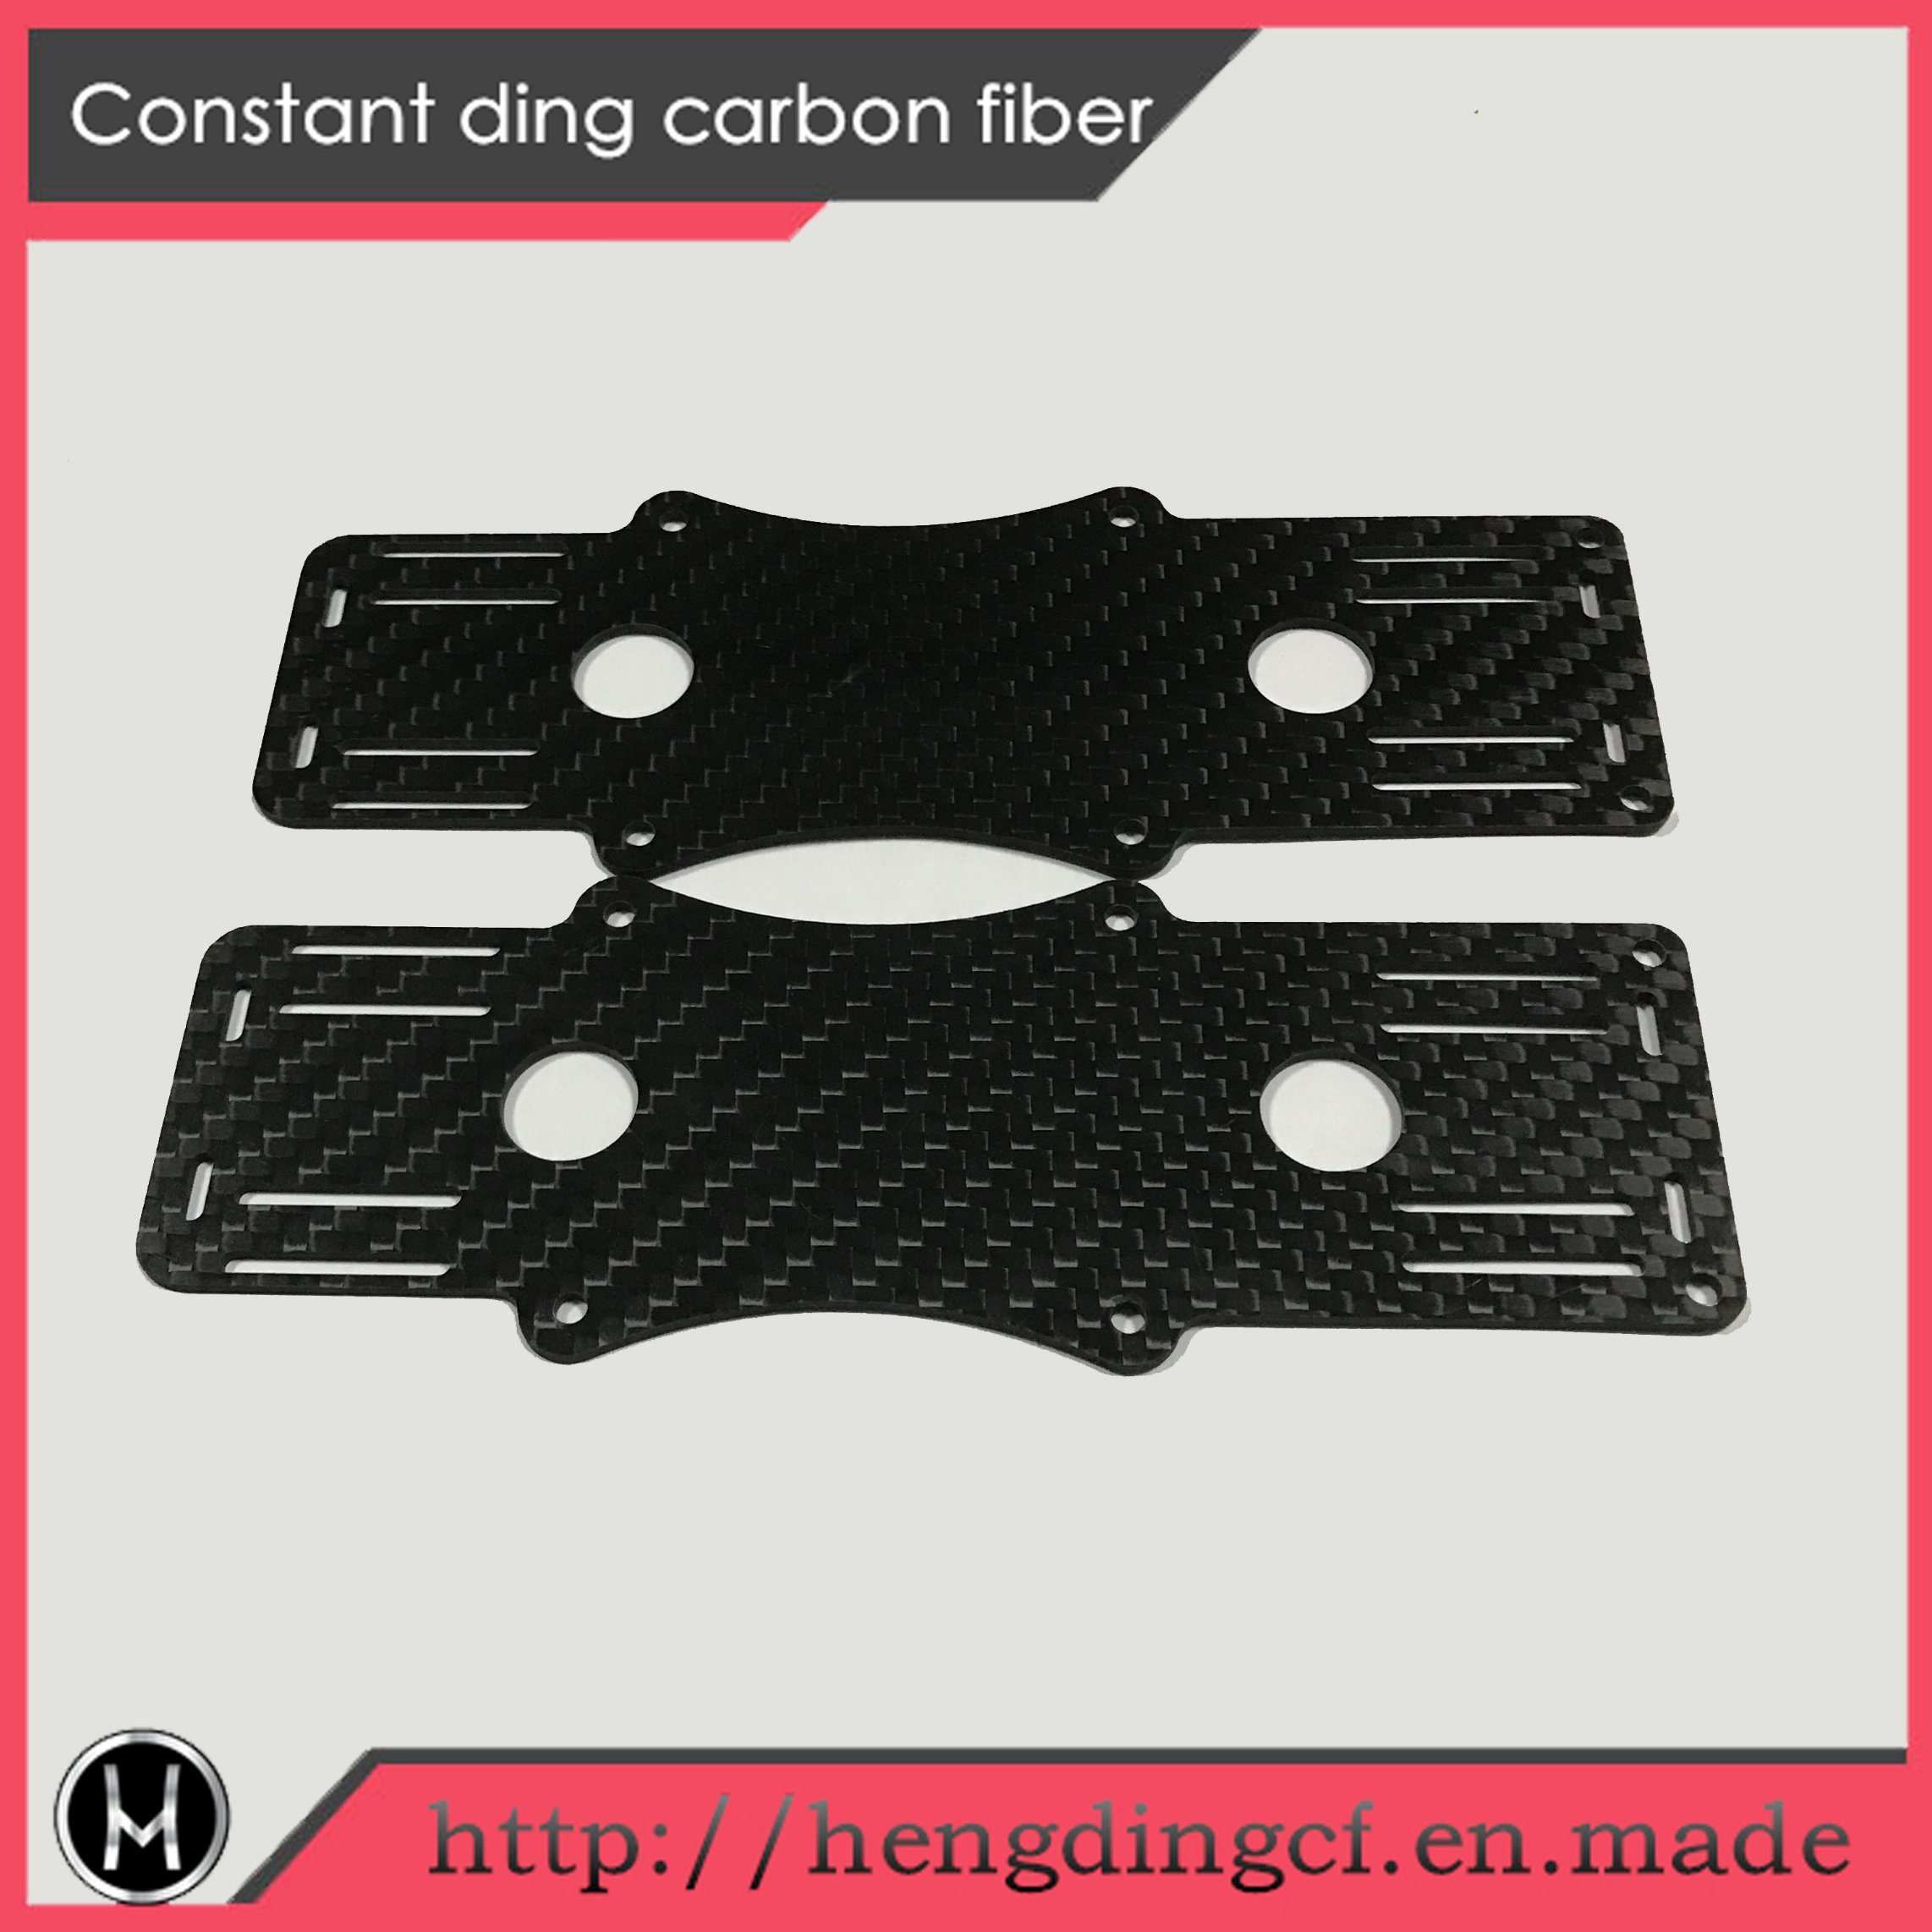 CNC Finishing Plain Carbon Fiber for Uav